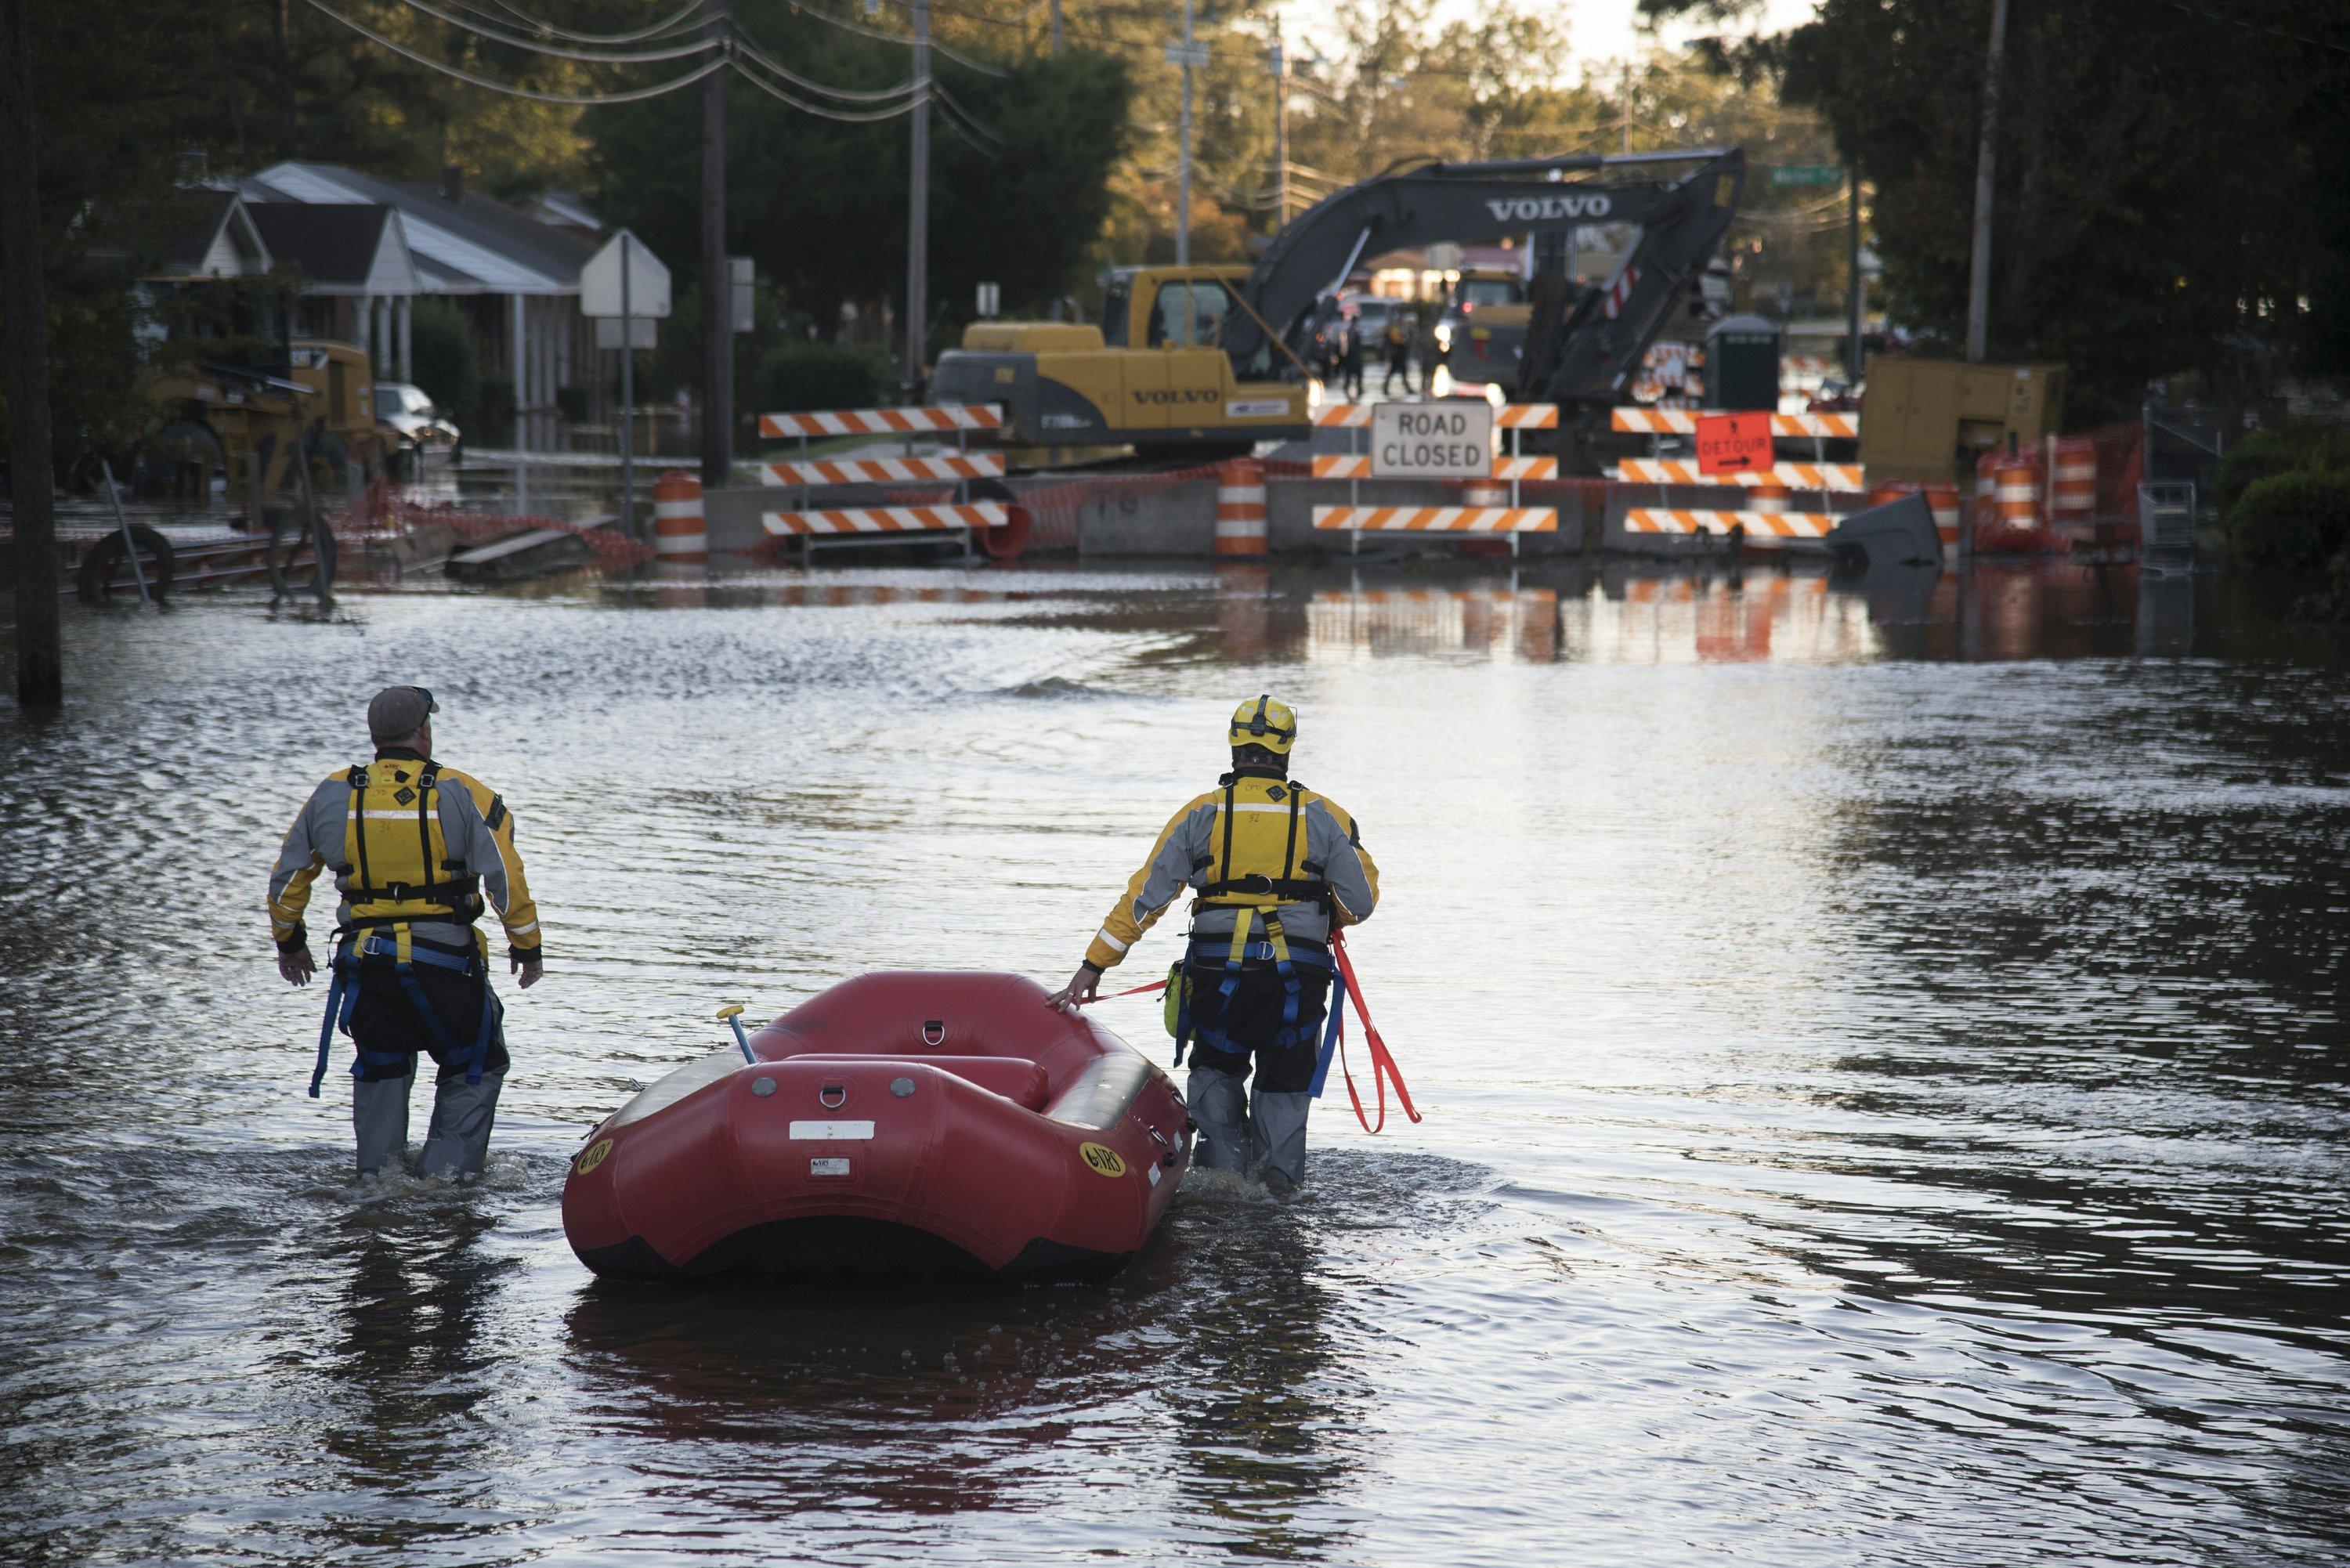 North Carolina braces for more flooding in downstream towns